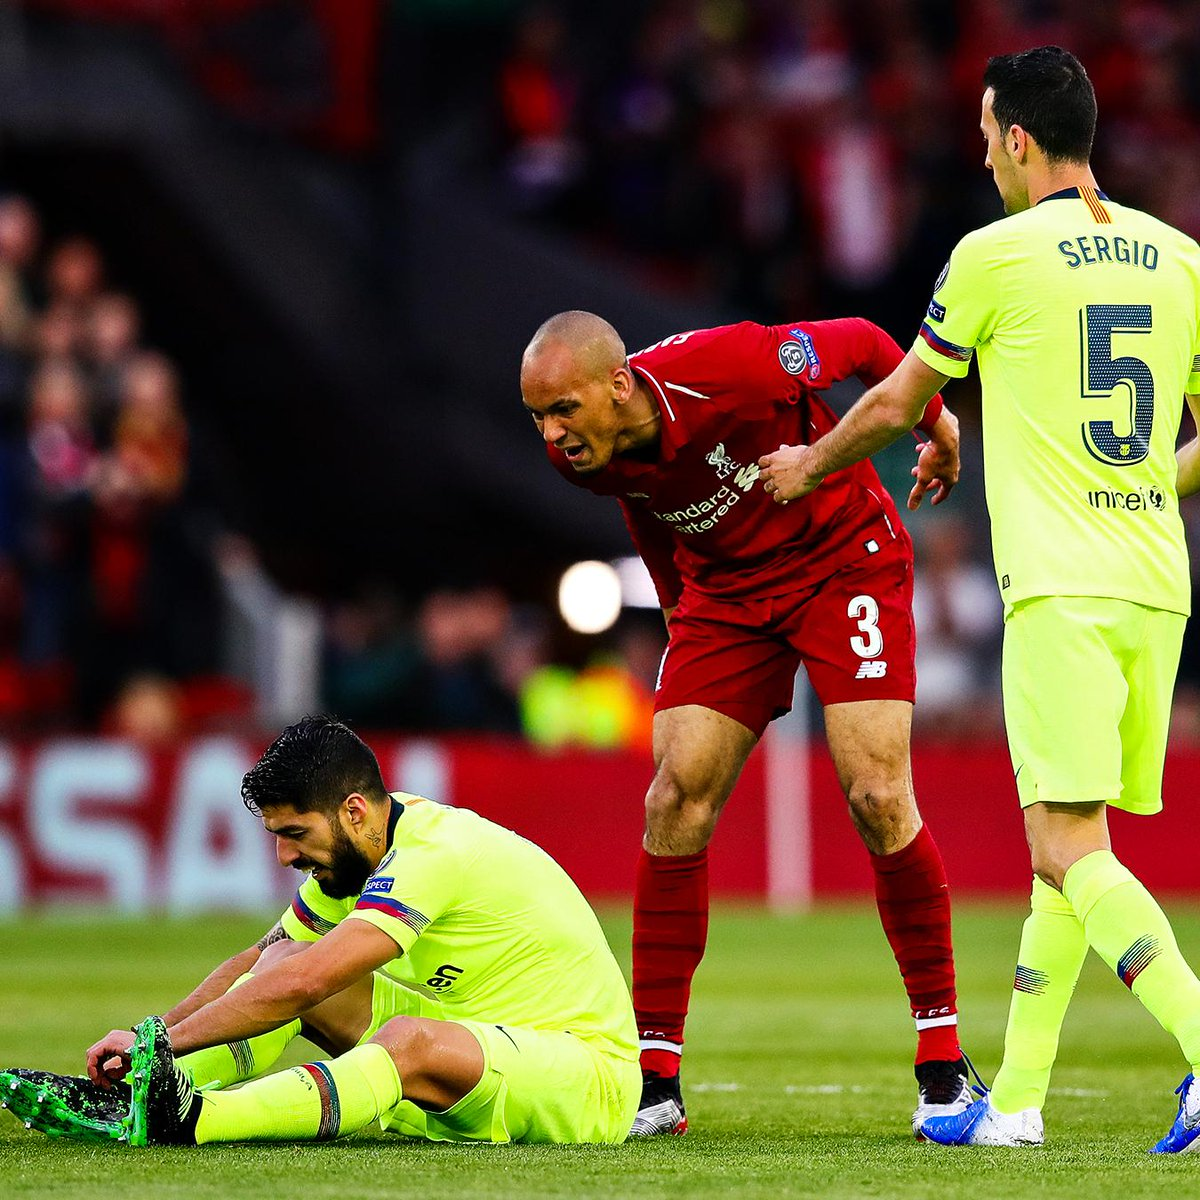 Liverpool 4 0 Borussia Dortmund Match Report Philippe: Flipboard: Liverpool Fans Call Out Suarez Dive In UCL